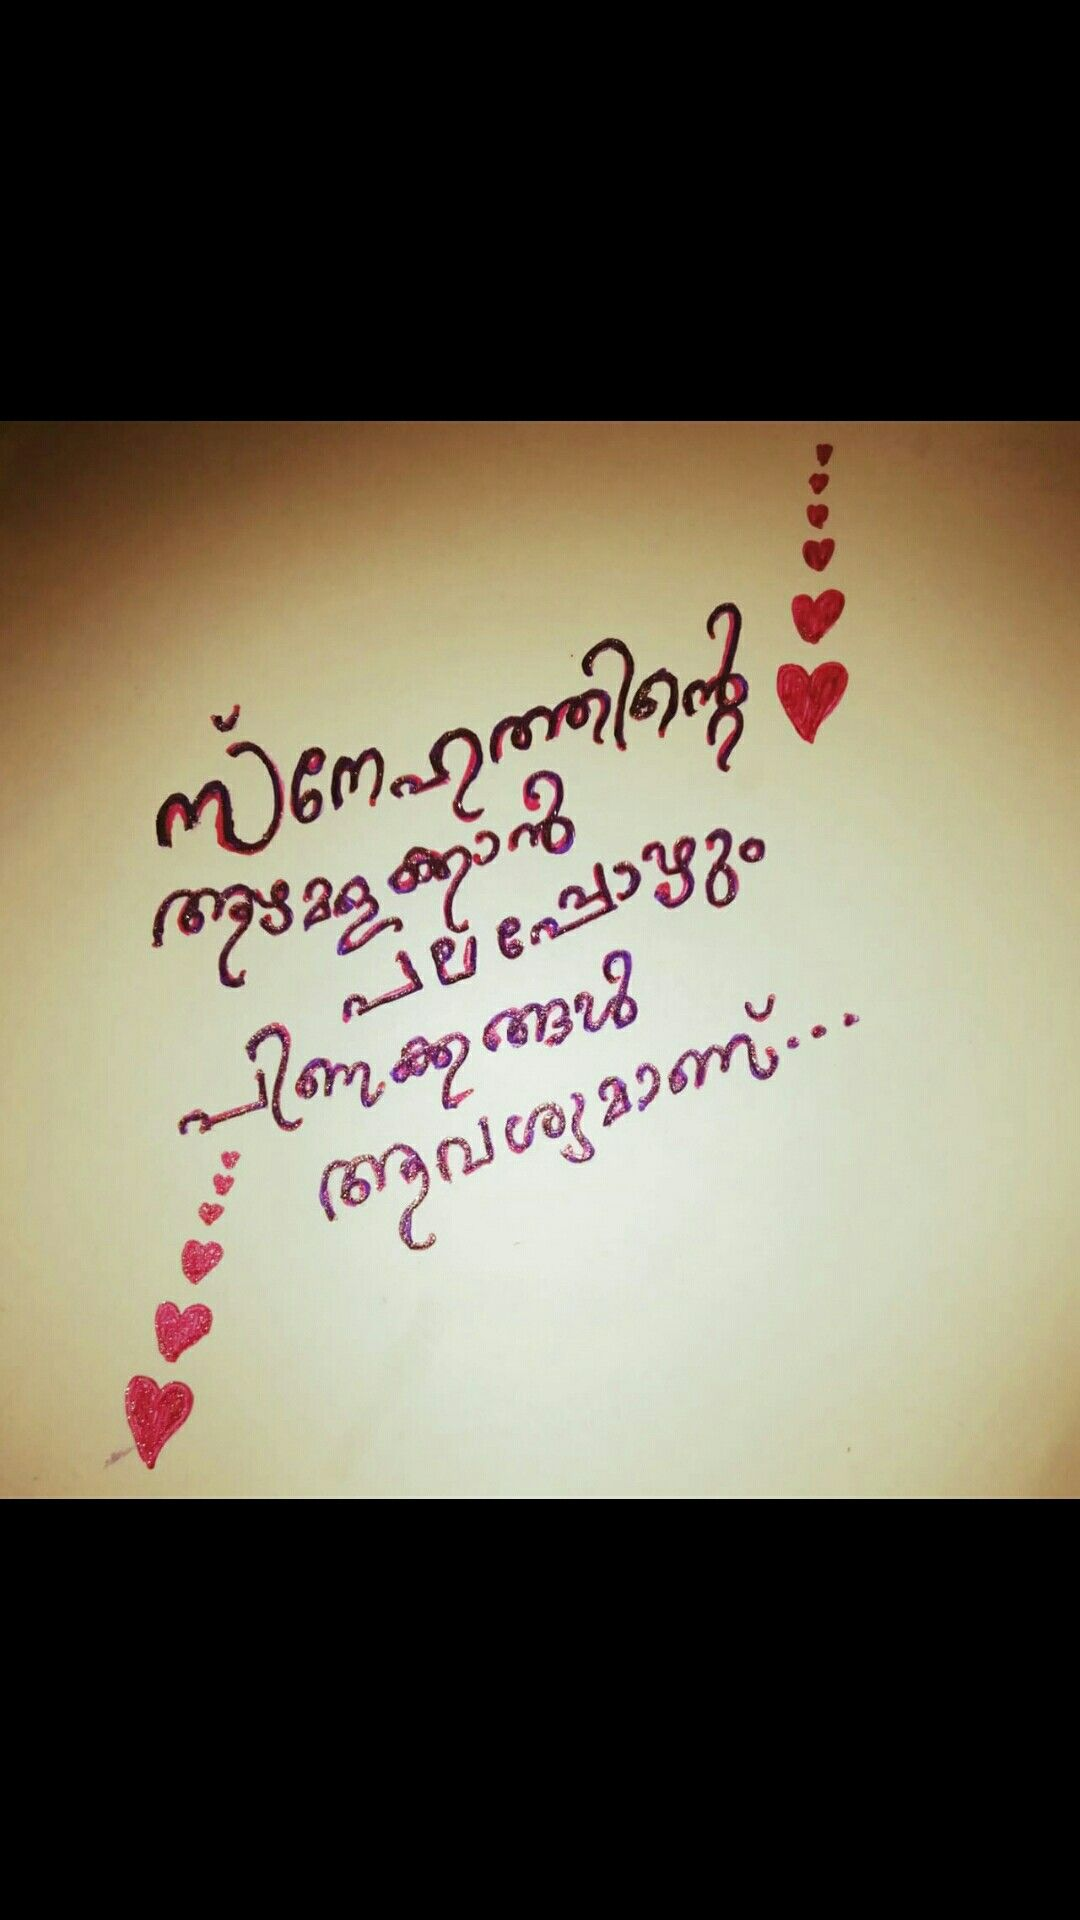 Pin By Nandhini On Thoughts Malayalam Quotes Eternal Love Thoughts